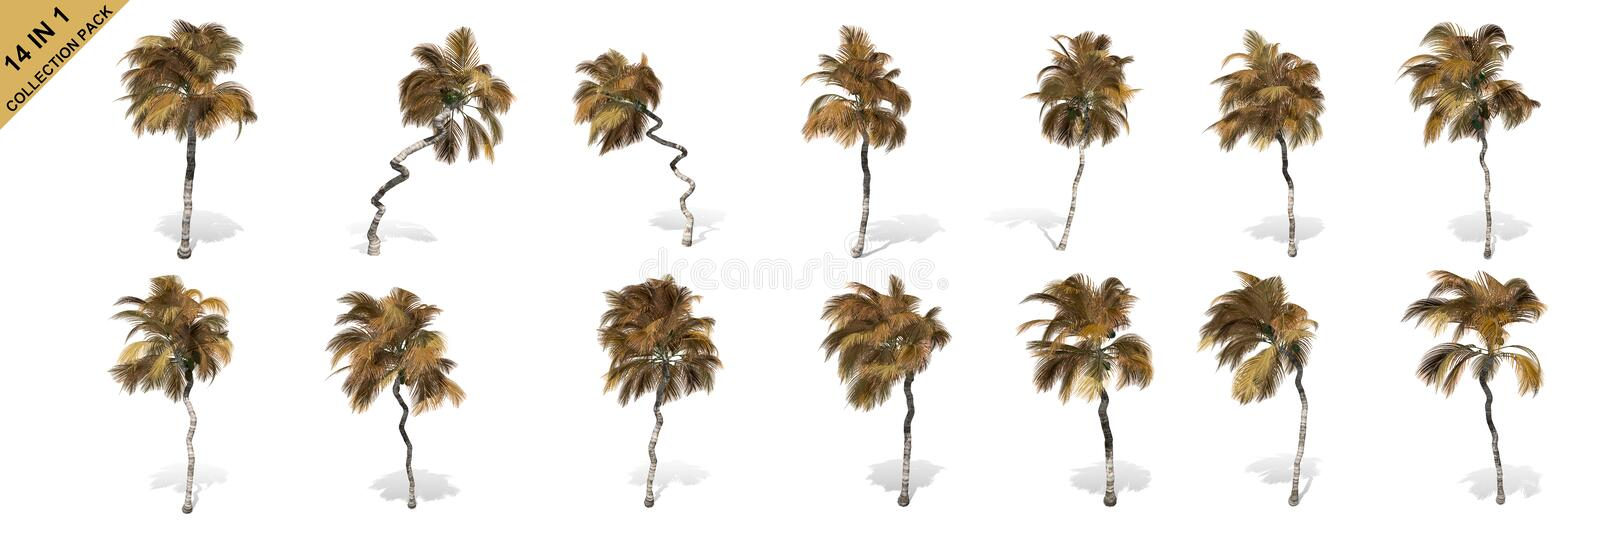 3D rendering - 14 in 1 collection of tall coconut trees isolated over a white background vector illustration